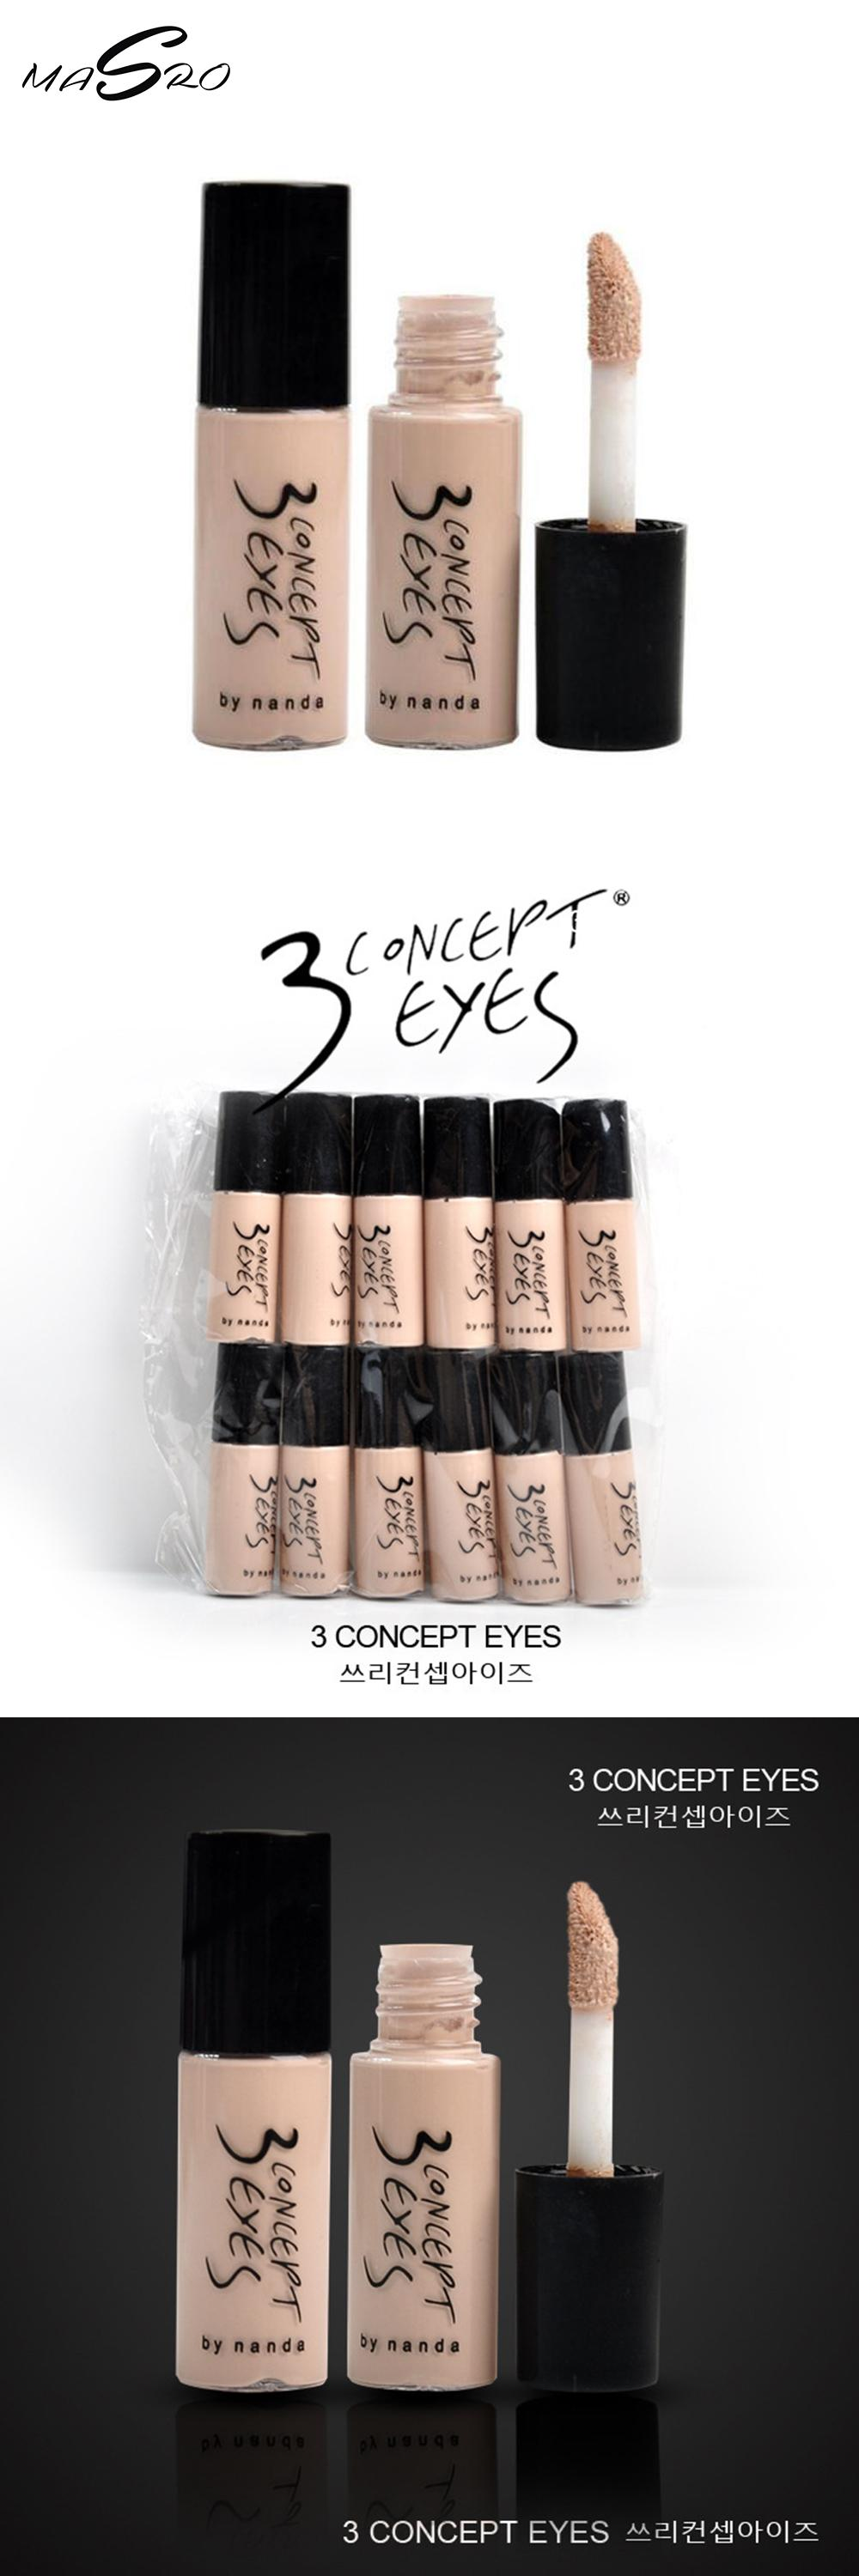 [Visit to Buy] Masro Makeup brand new 3 concept eyes full